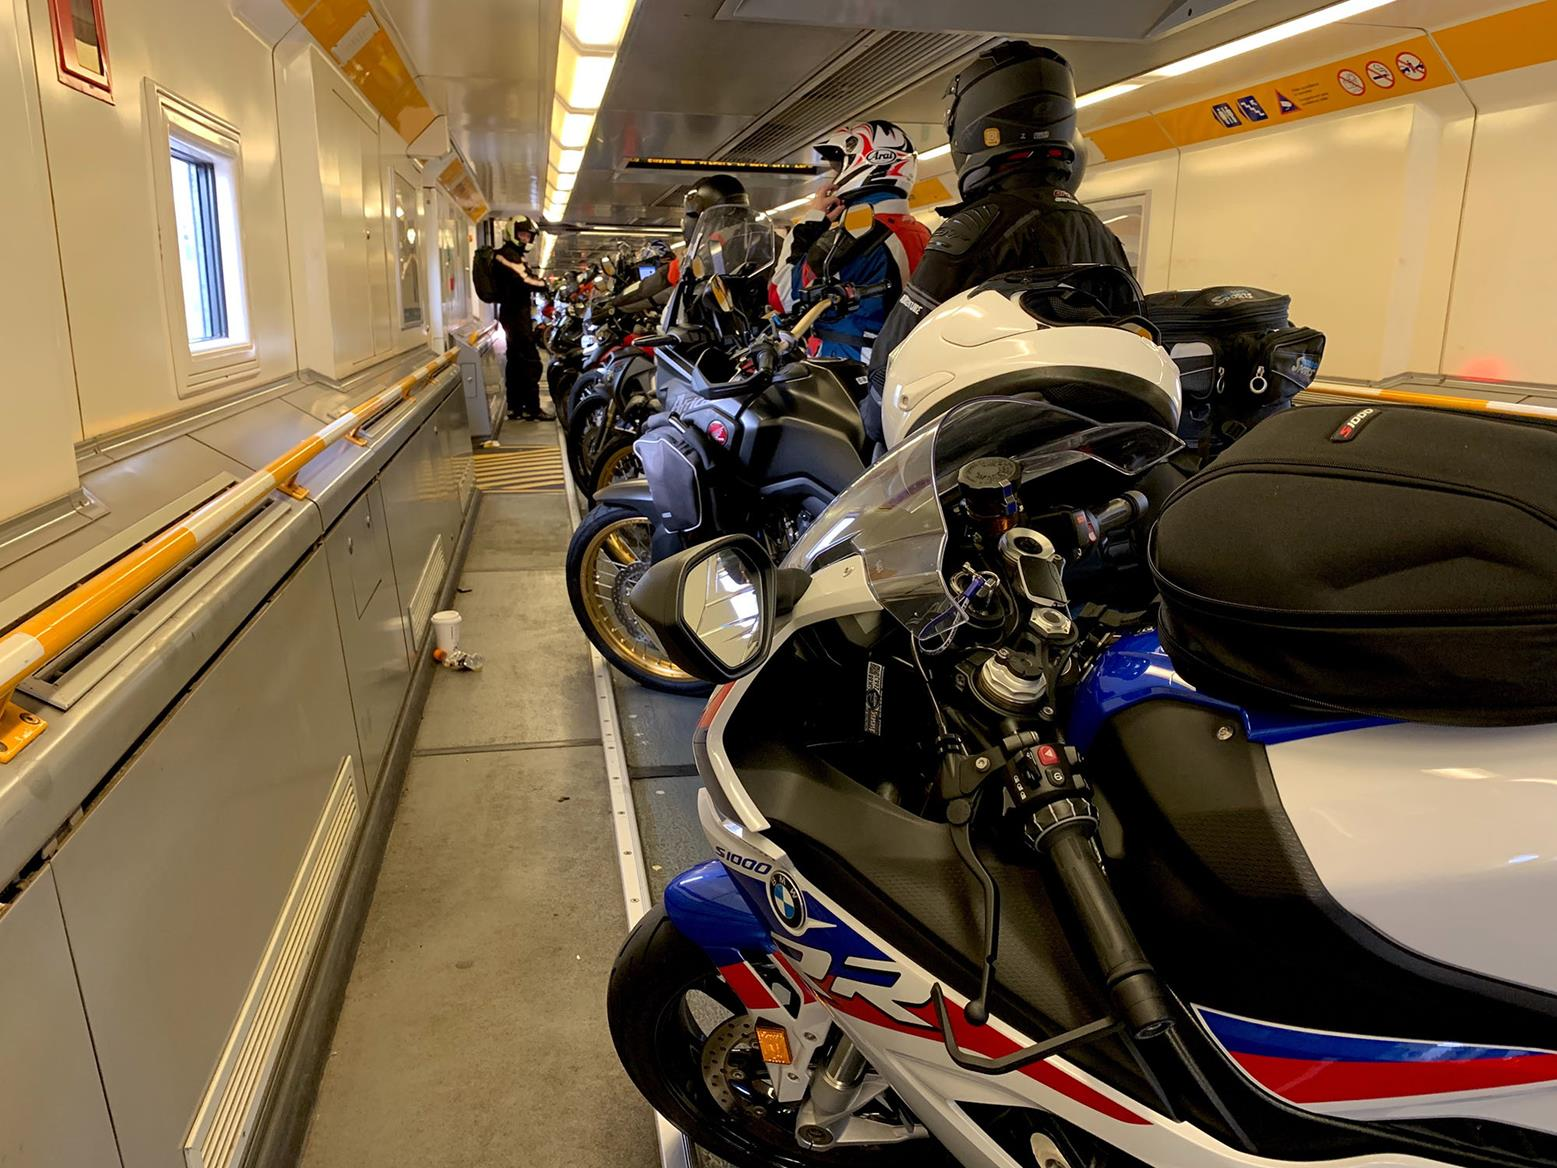 Crossing into Europe on the BMW S1000RR